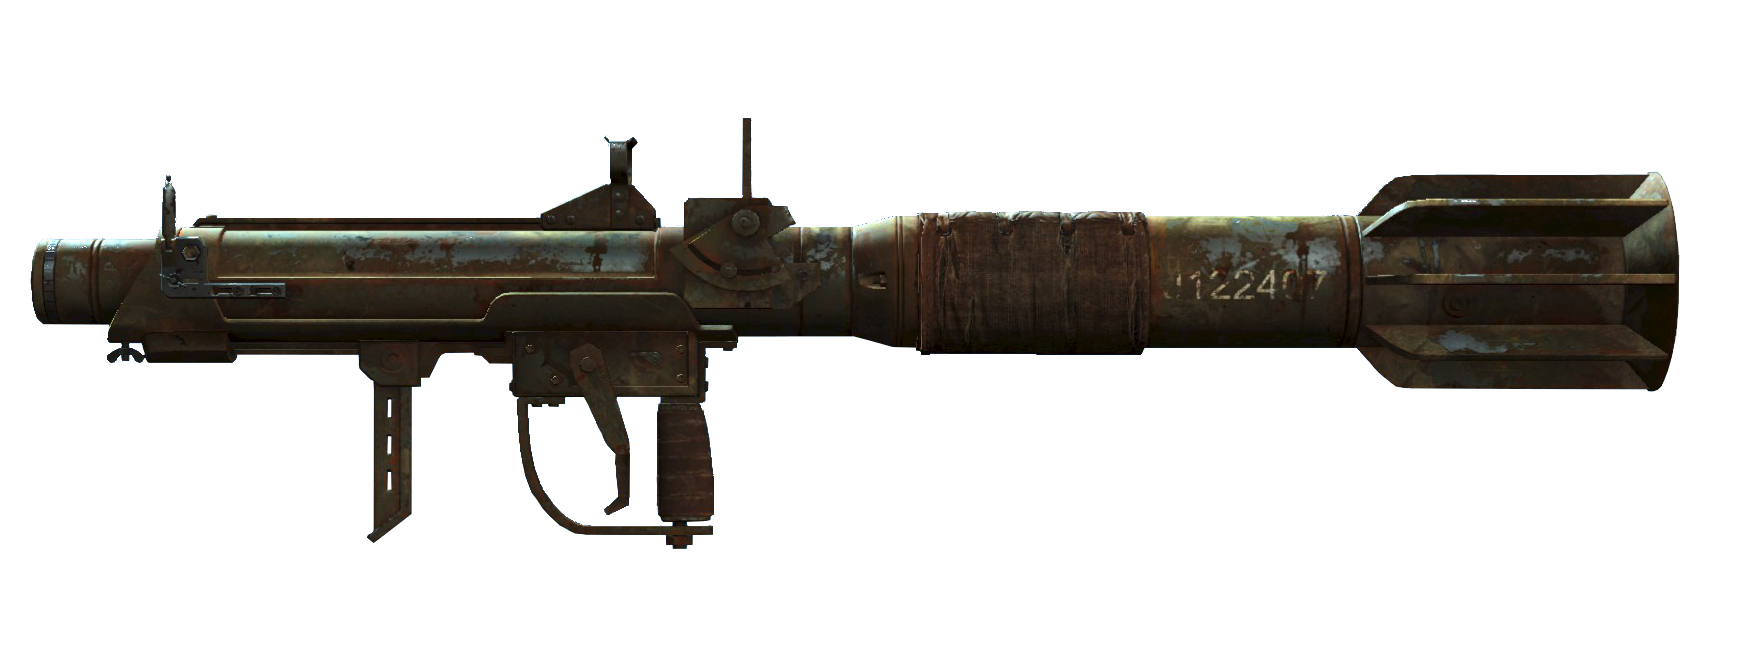 Missile launcher (Fallout 4) | Fallout Wiki | FANDOM powered